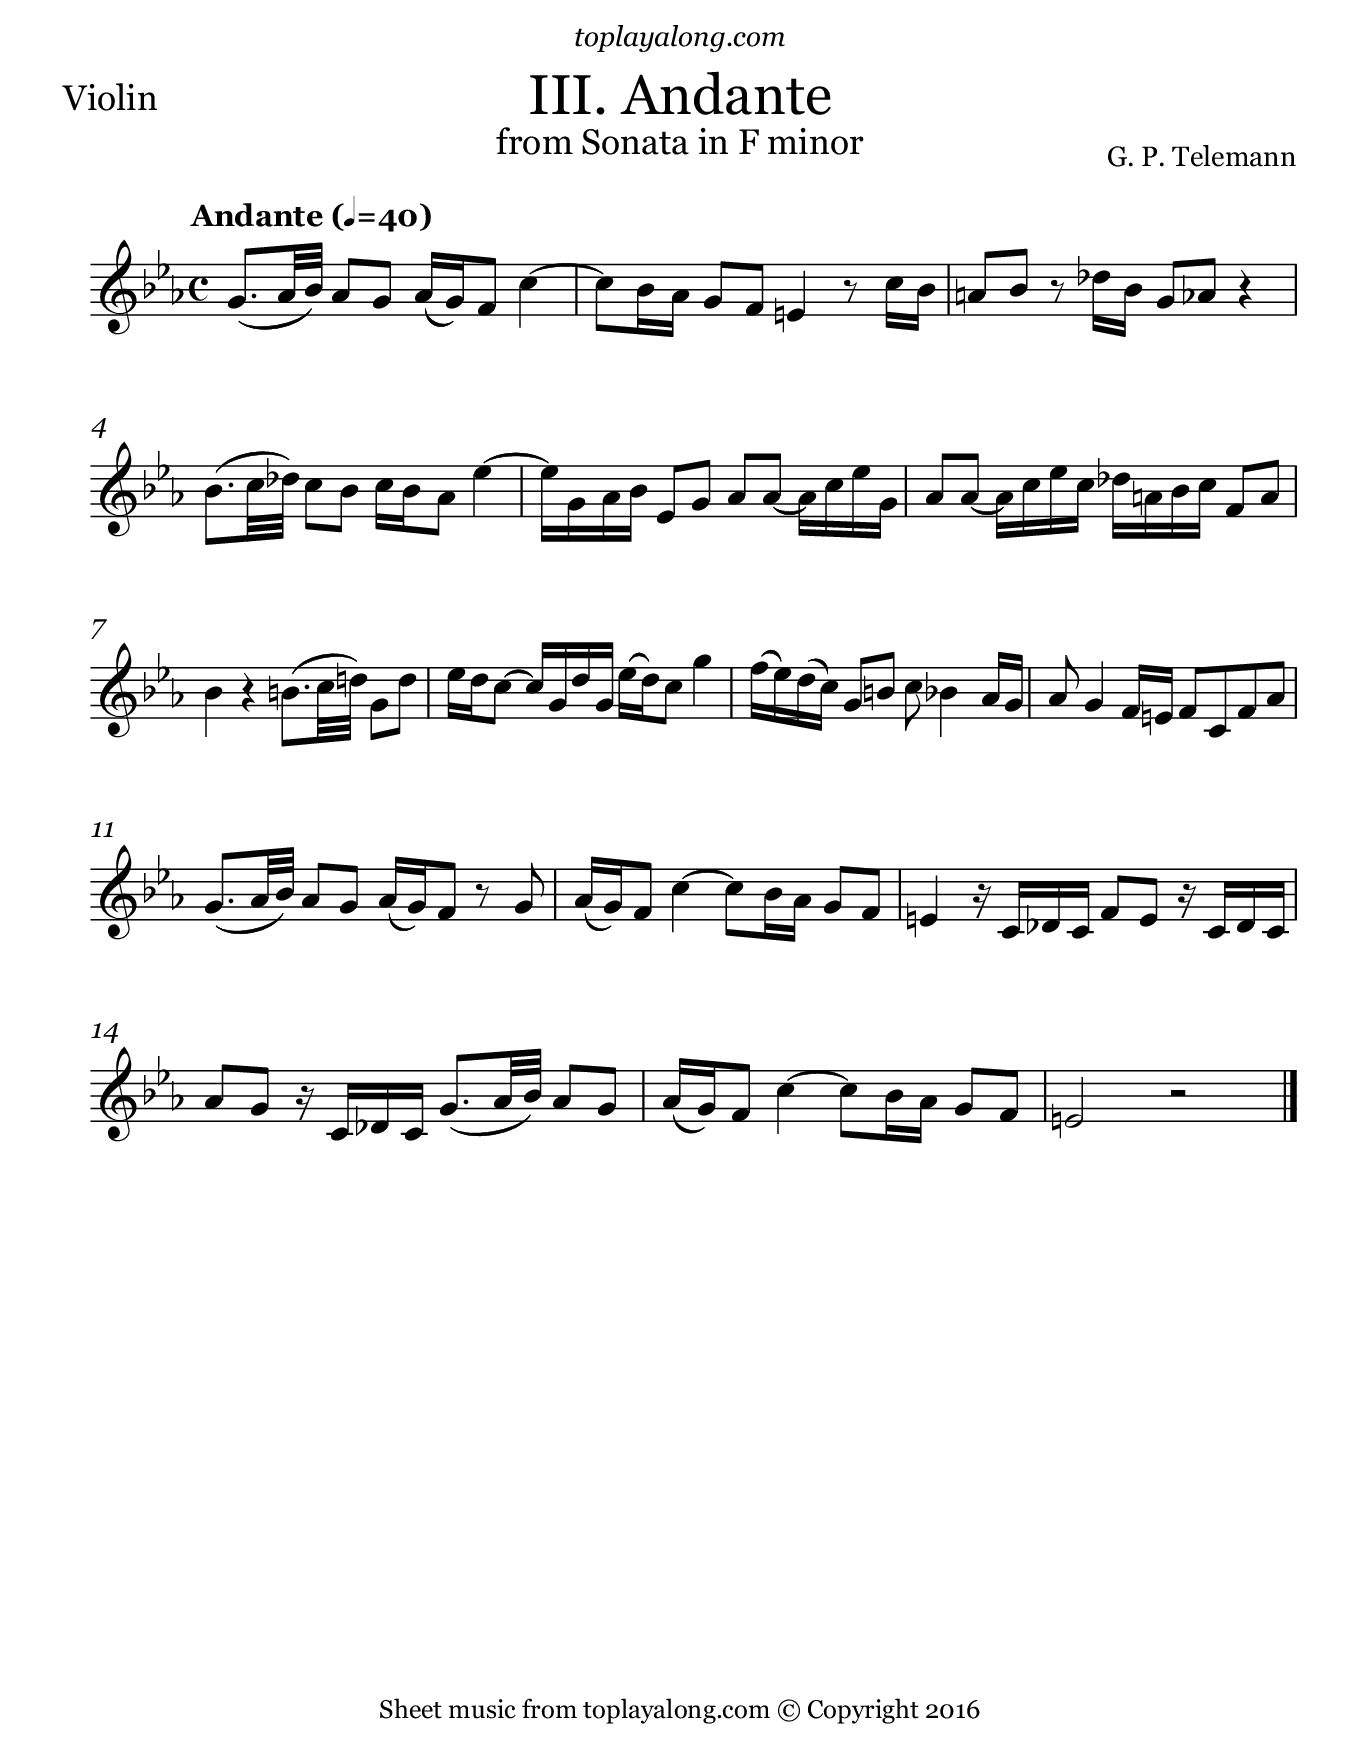 Sonata in F minor (III. Andante) by Telemann. Sheet music for Violin, page 1.